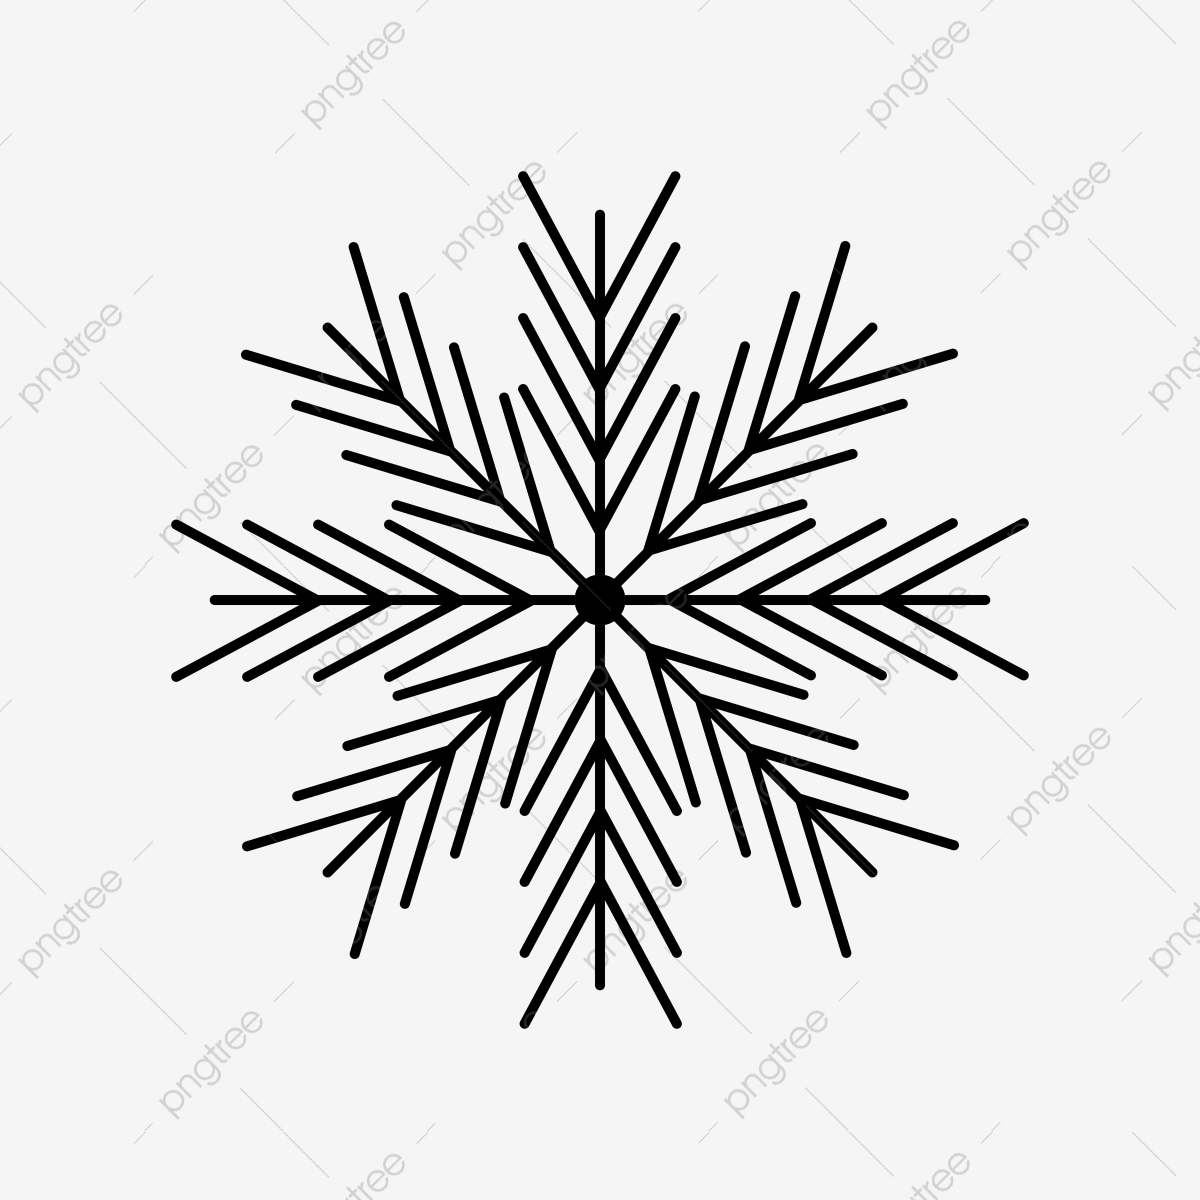 Transparent Background Snowflakes Clipart , Png Download - Transparent  Background Snowflake Clipart, Png Download - kindpng